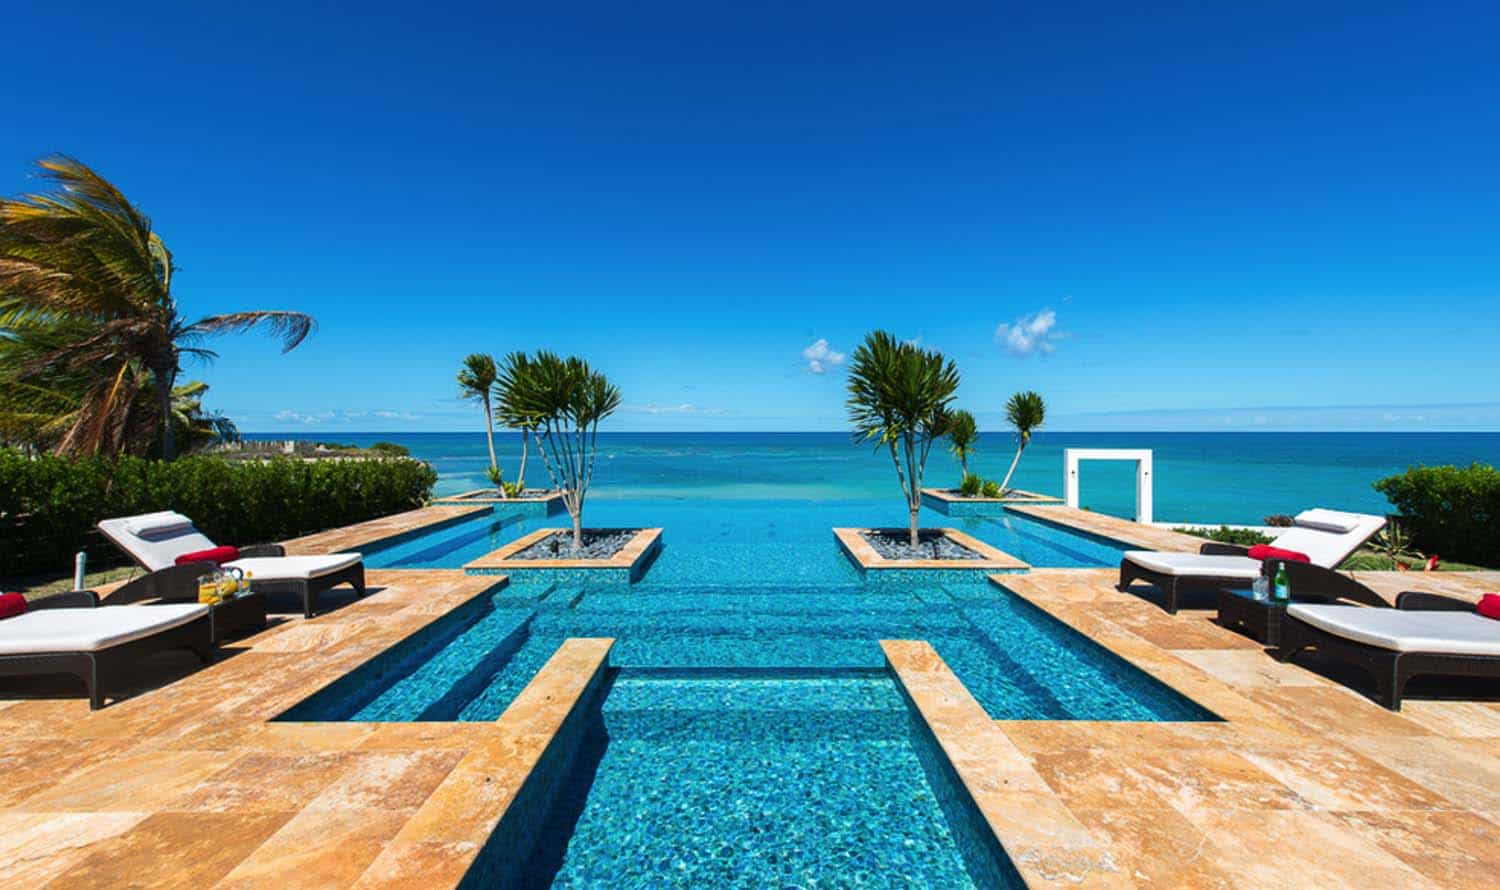 Infinity Edge Pool Ideas-33-1 Kindesign